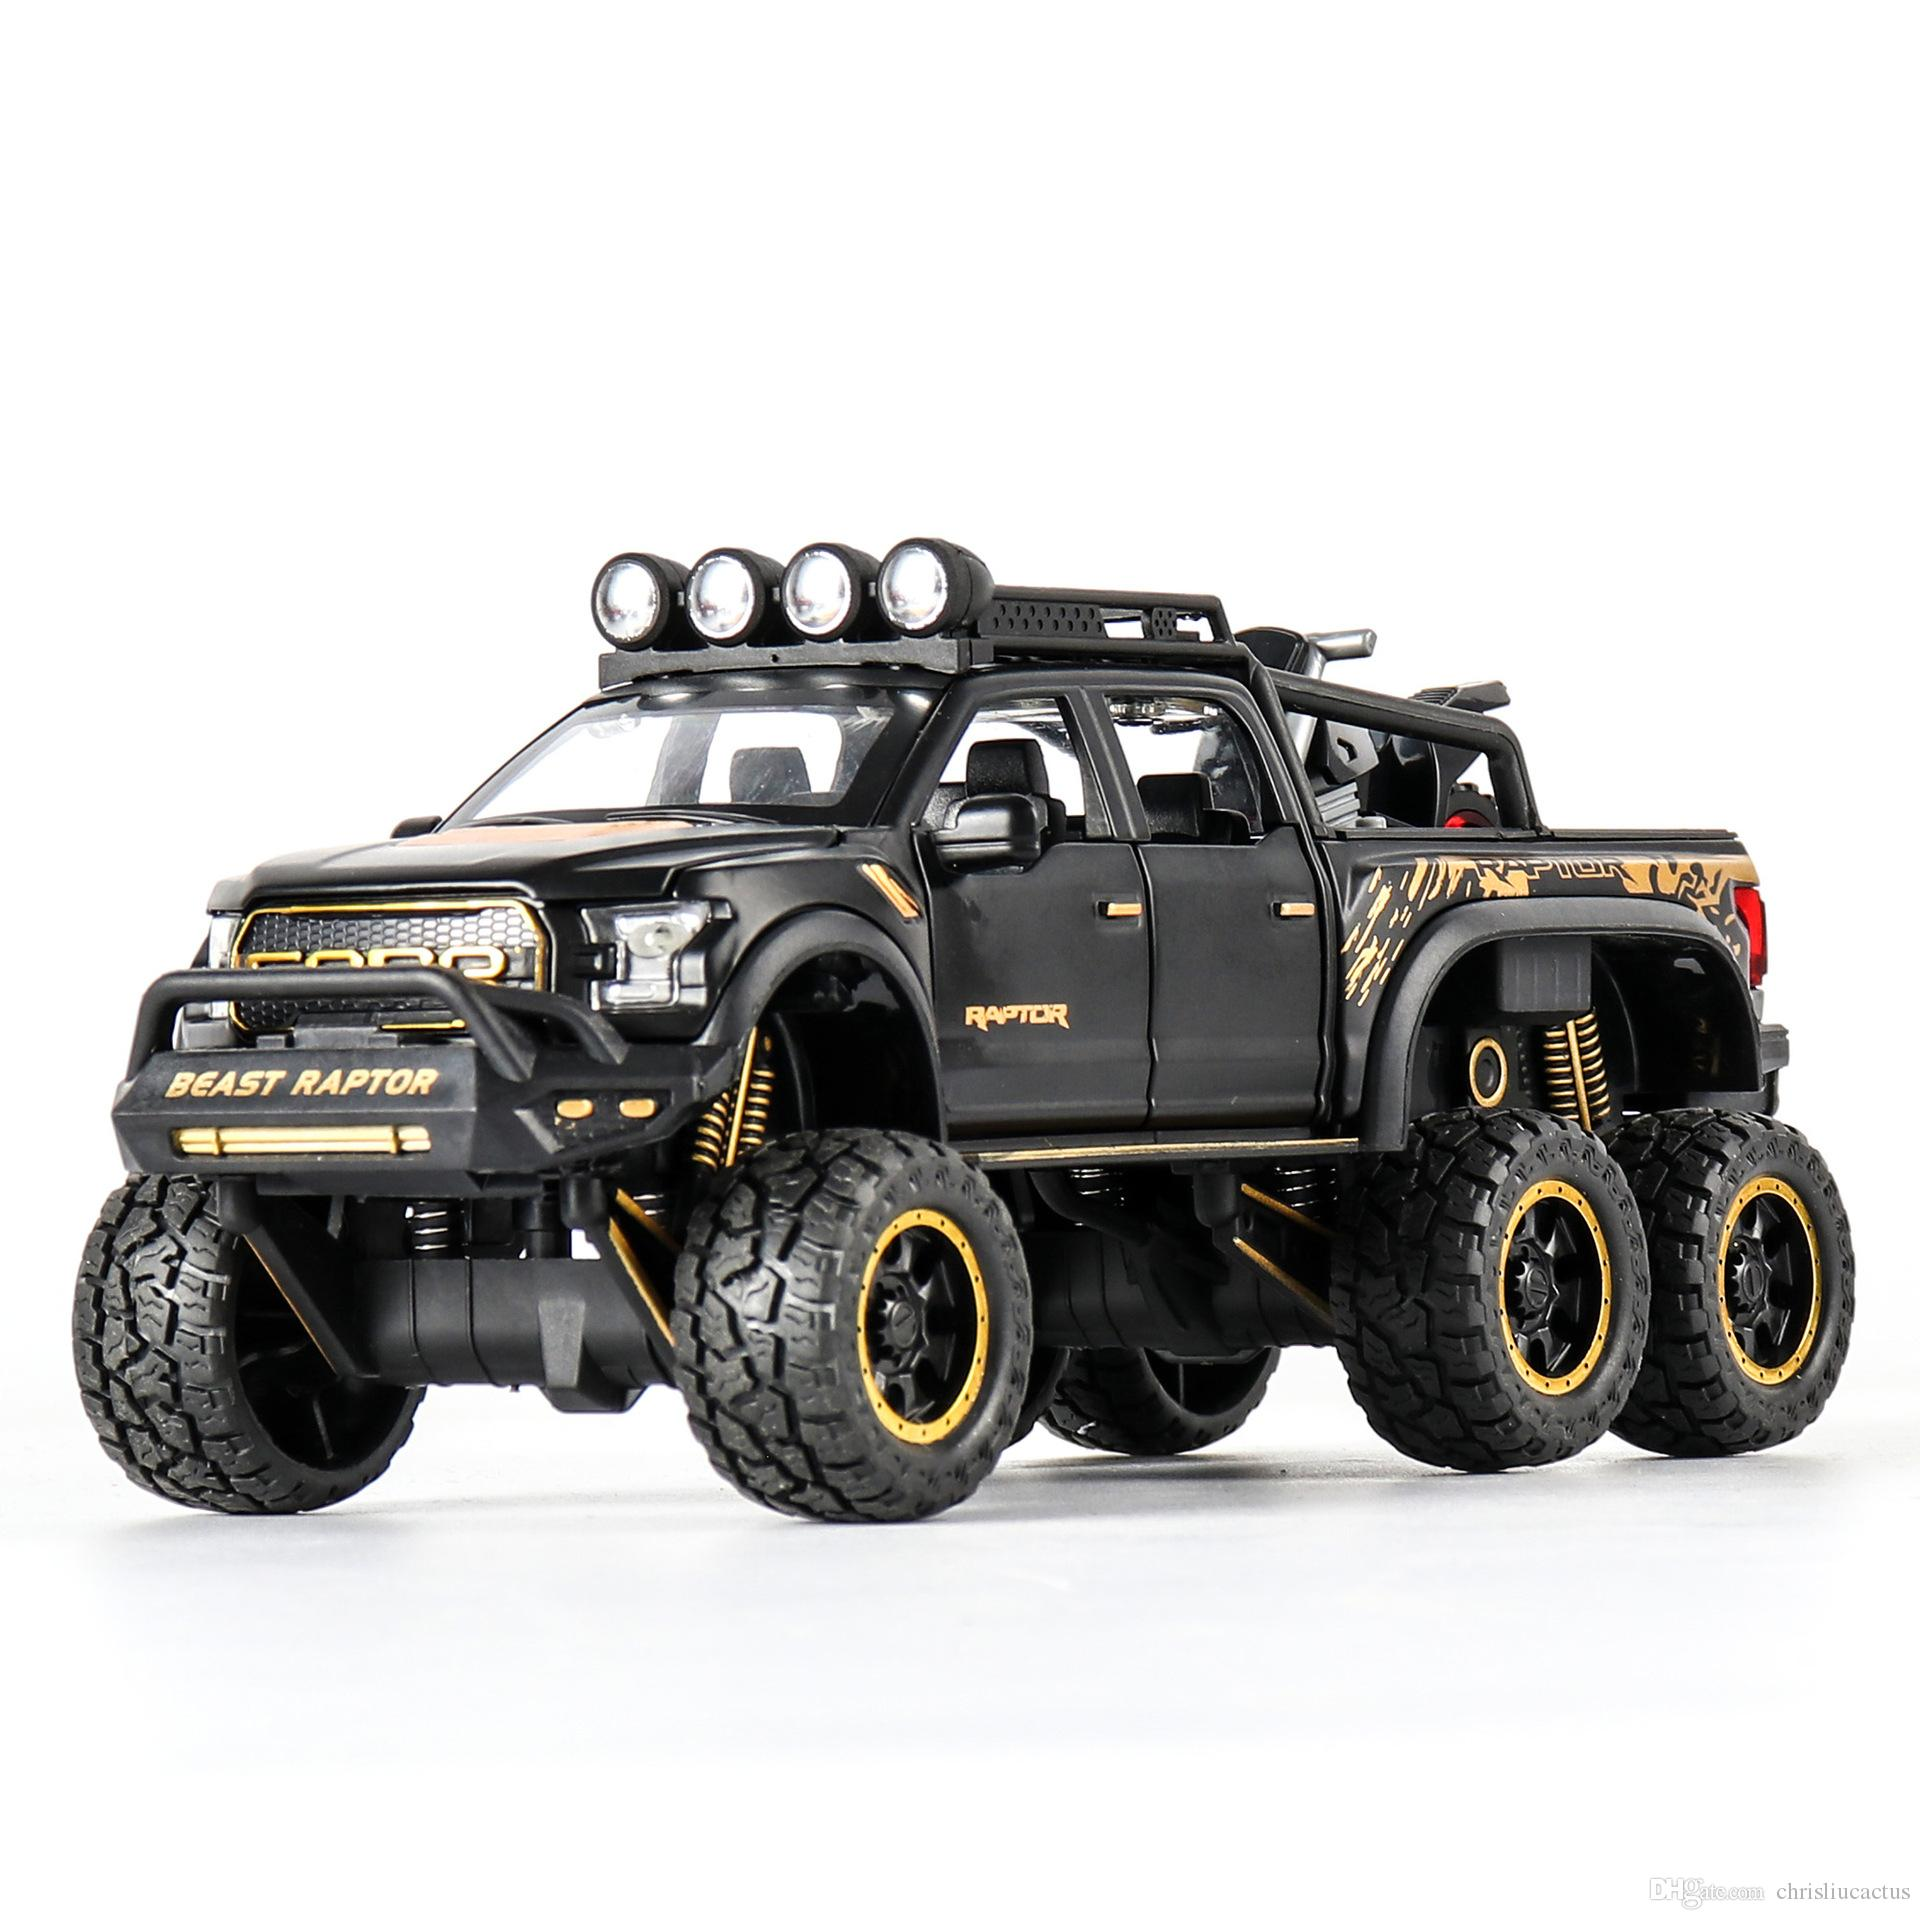 Ford Raptor F150 Alloy Pull-Back Off-road Vehicle Six Doors Open Color Box Package 1:28 Car Model Toy